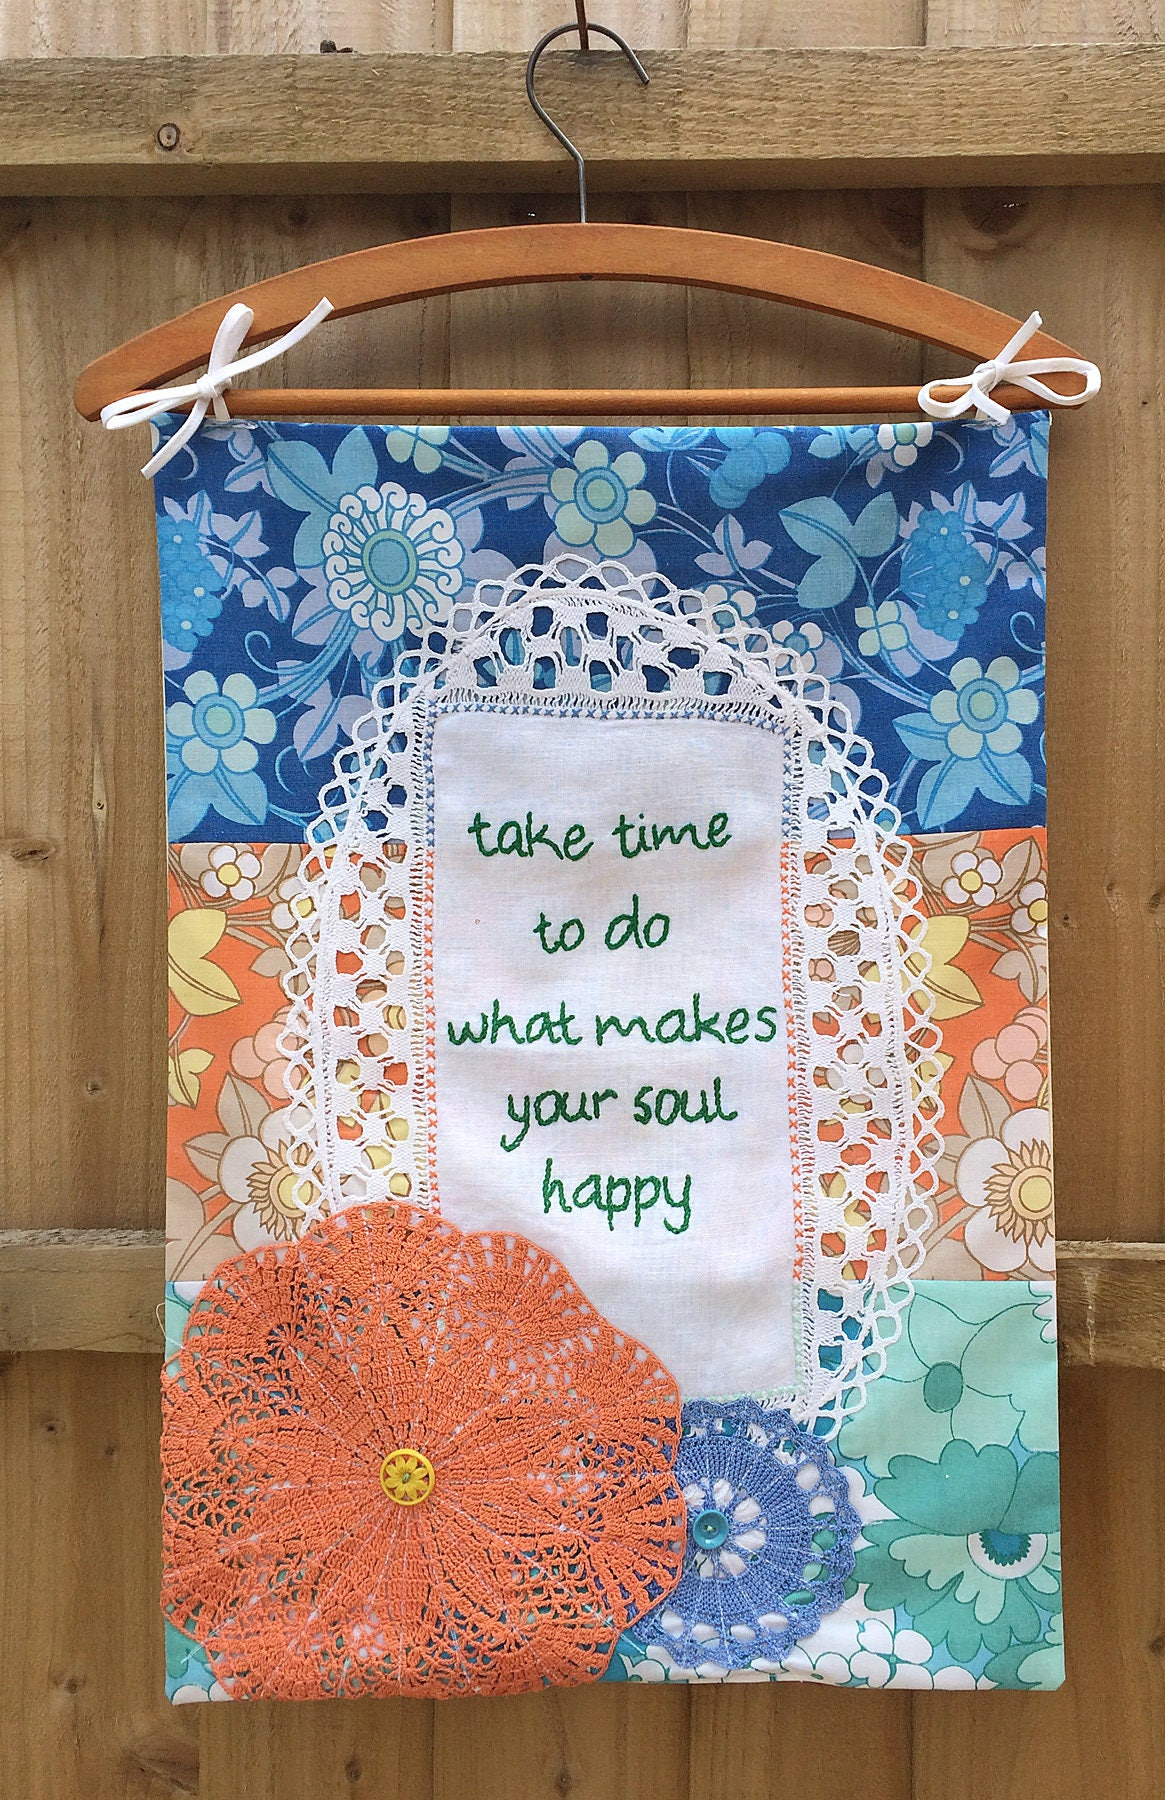 Embroidered Wall Hanging Banner  Take Time To Do What Makes Your Soul Happy  Vintage 70s Funky Bright Fabric  Doilies